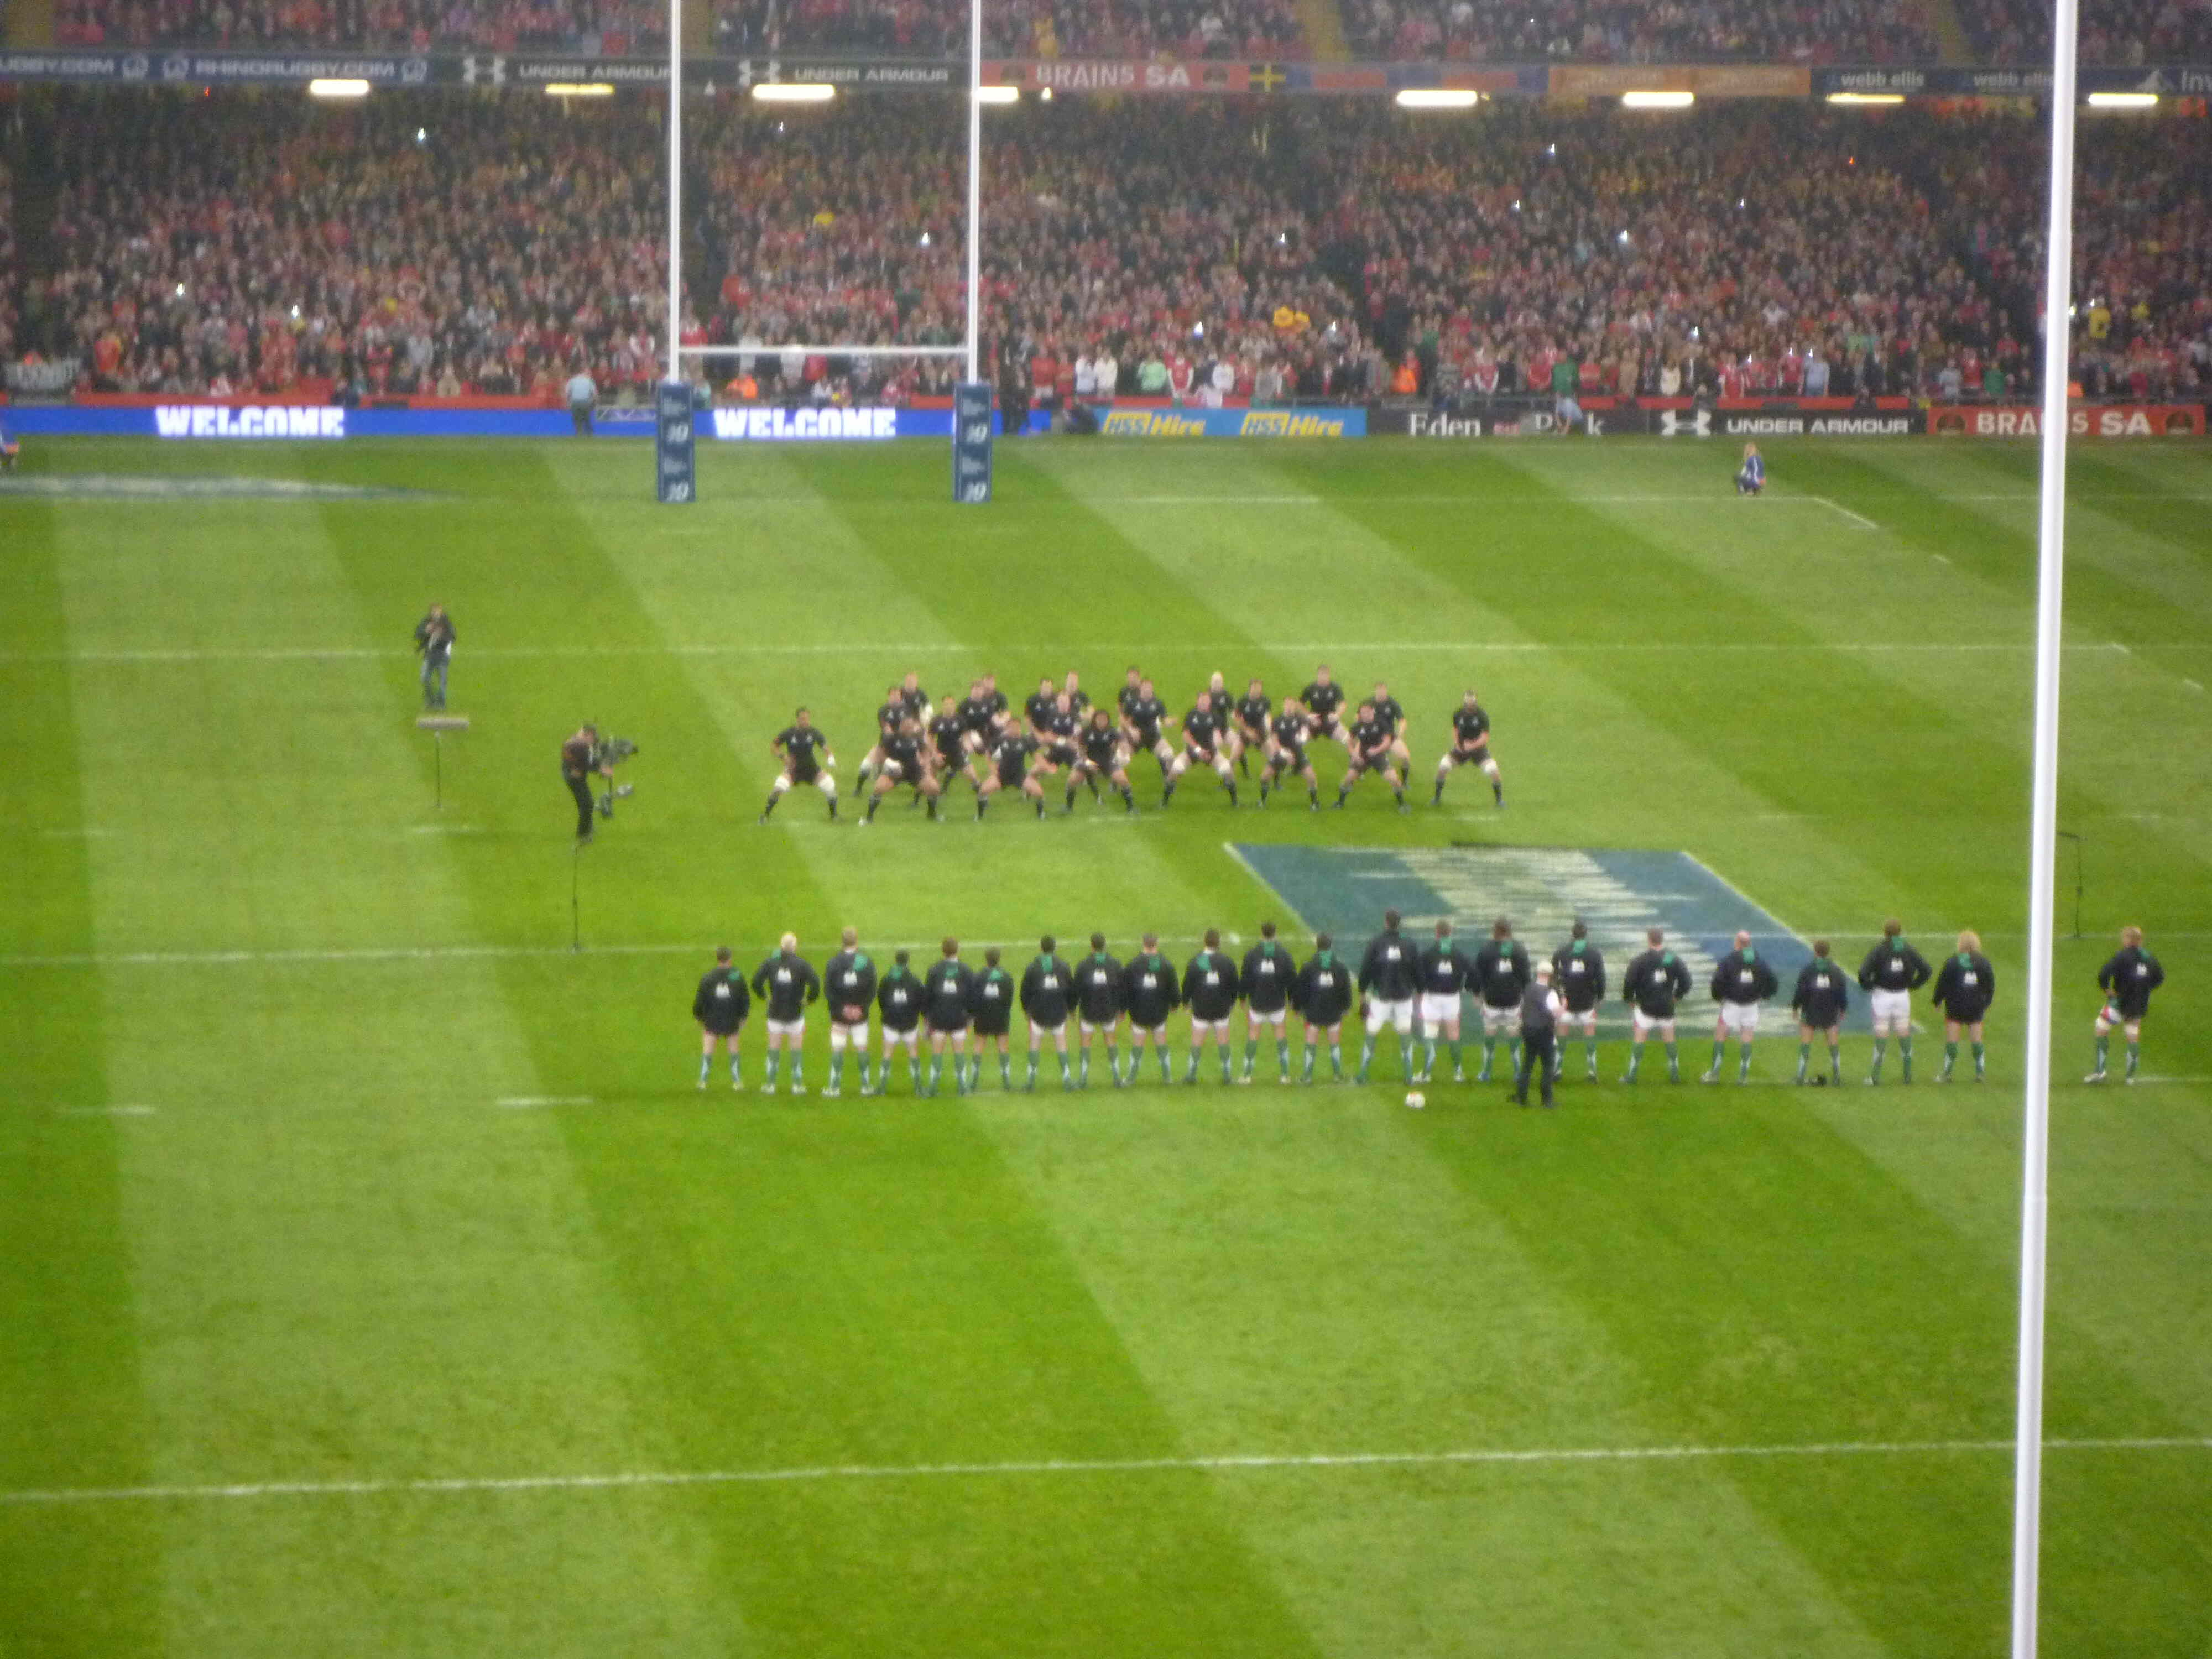 a rugby match!